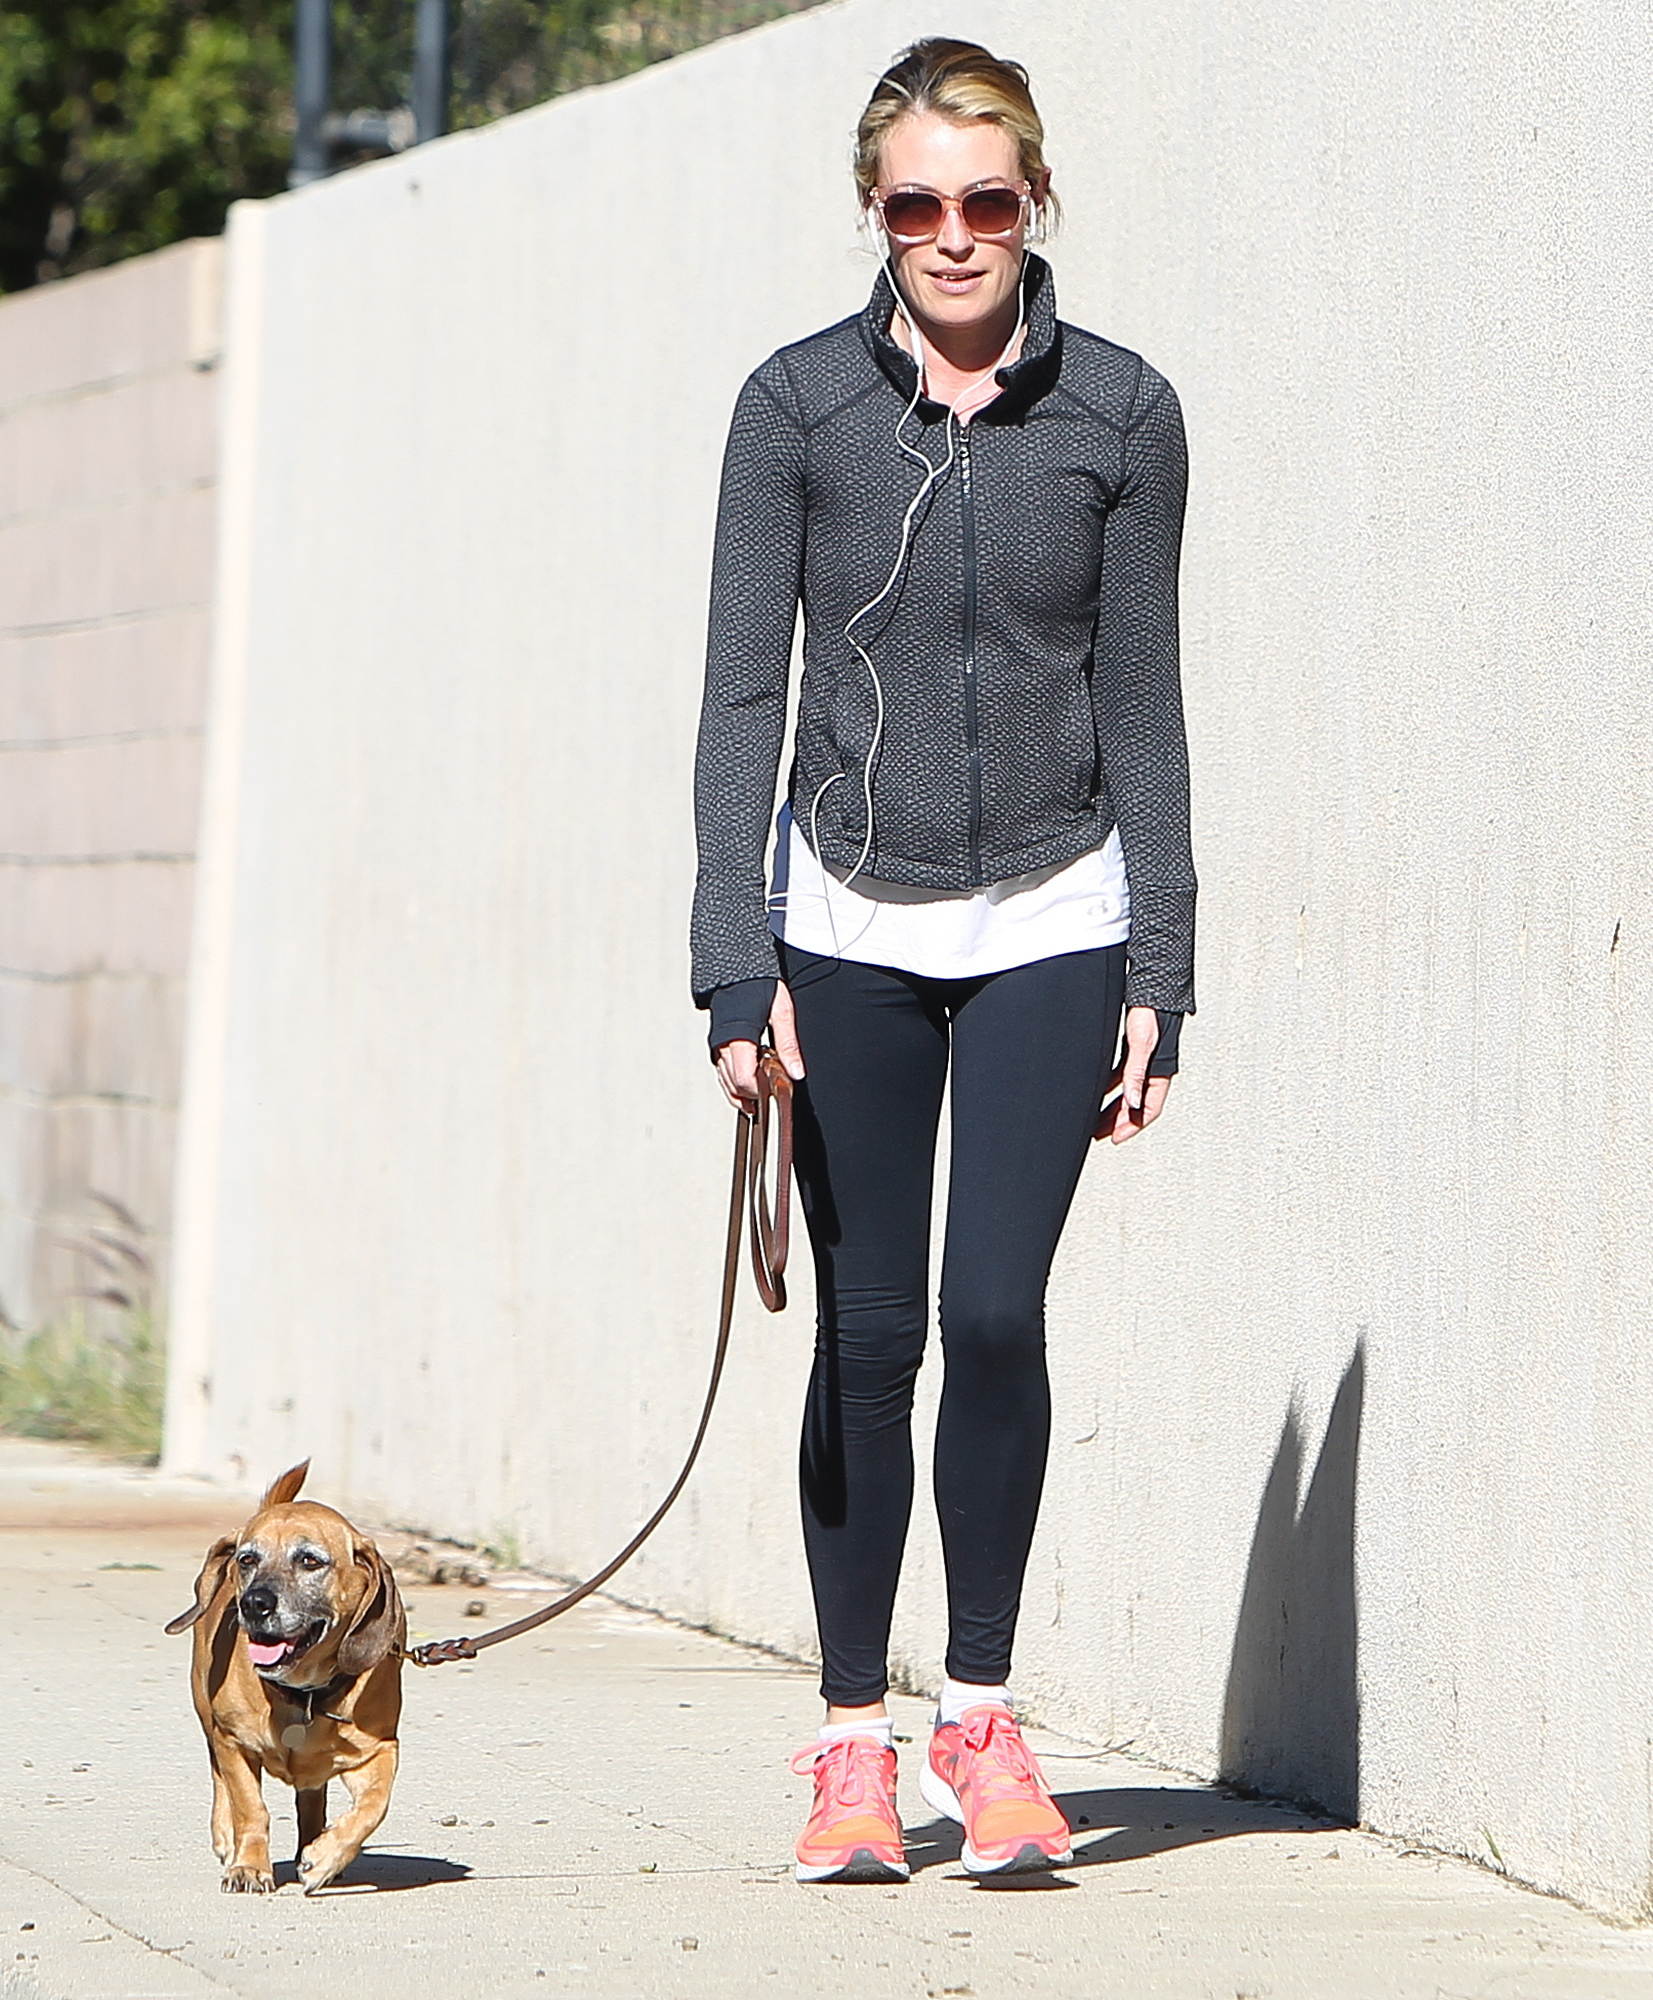 EXCLUSIVE: Cat Deeley takes her dog for a walk this morning in Beverly Hills